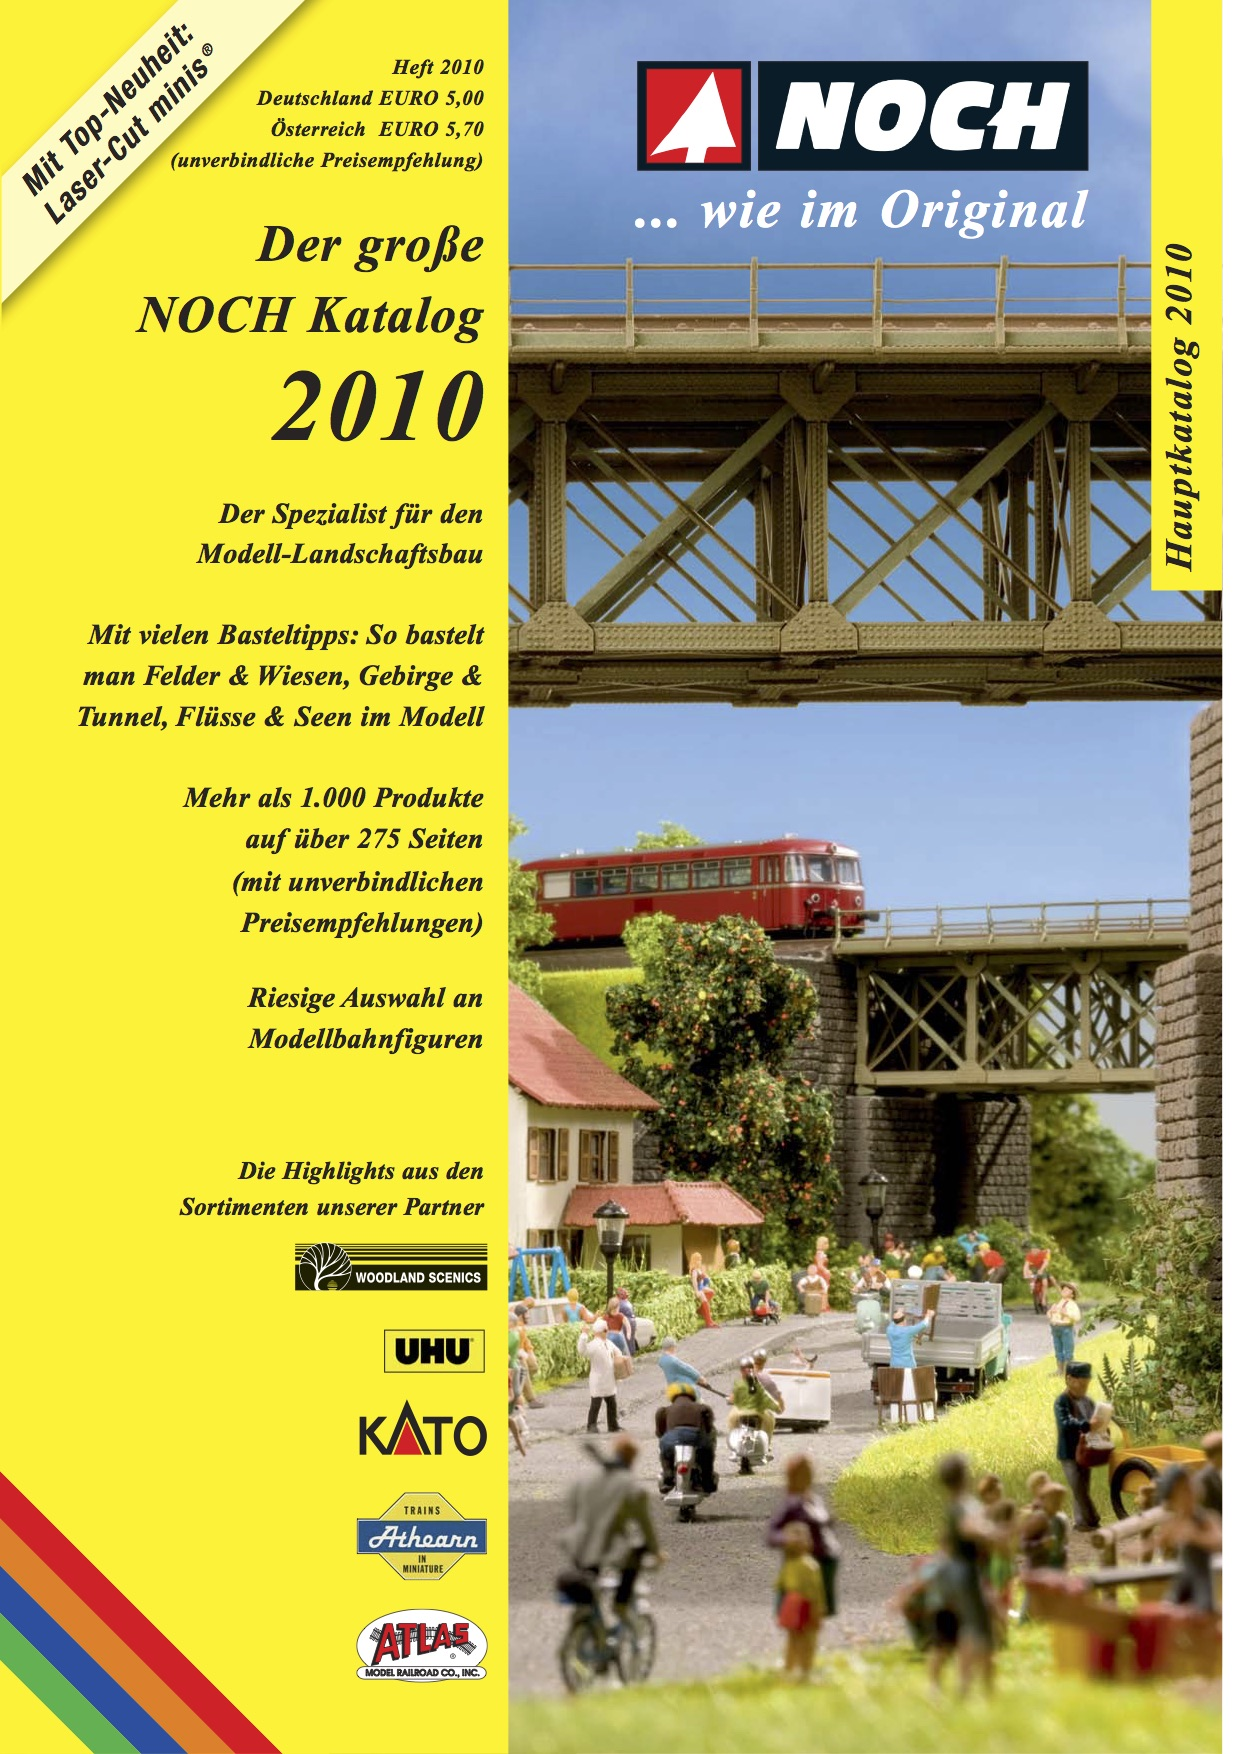 NOCH Katalog (Catalogue) 2010